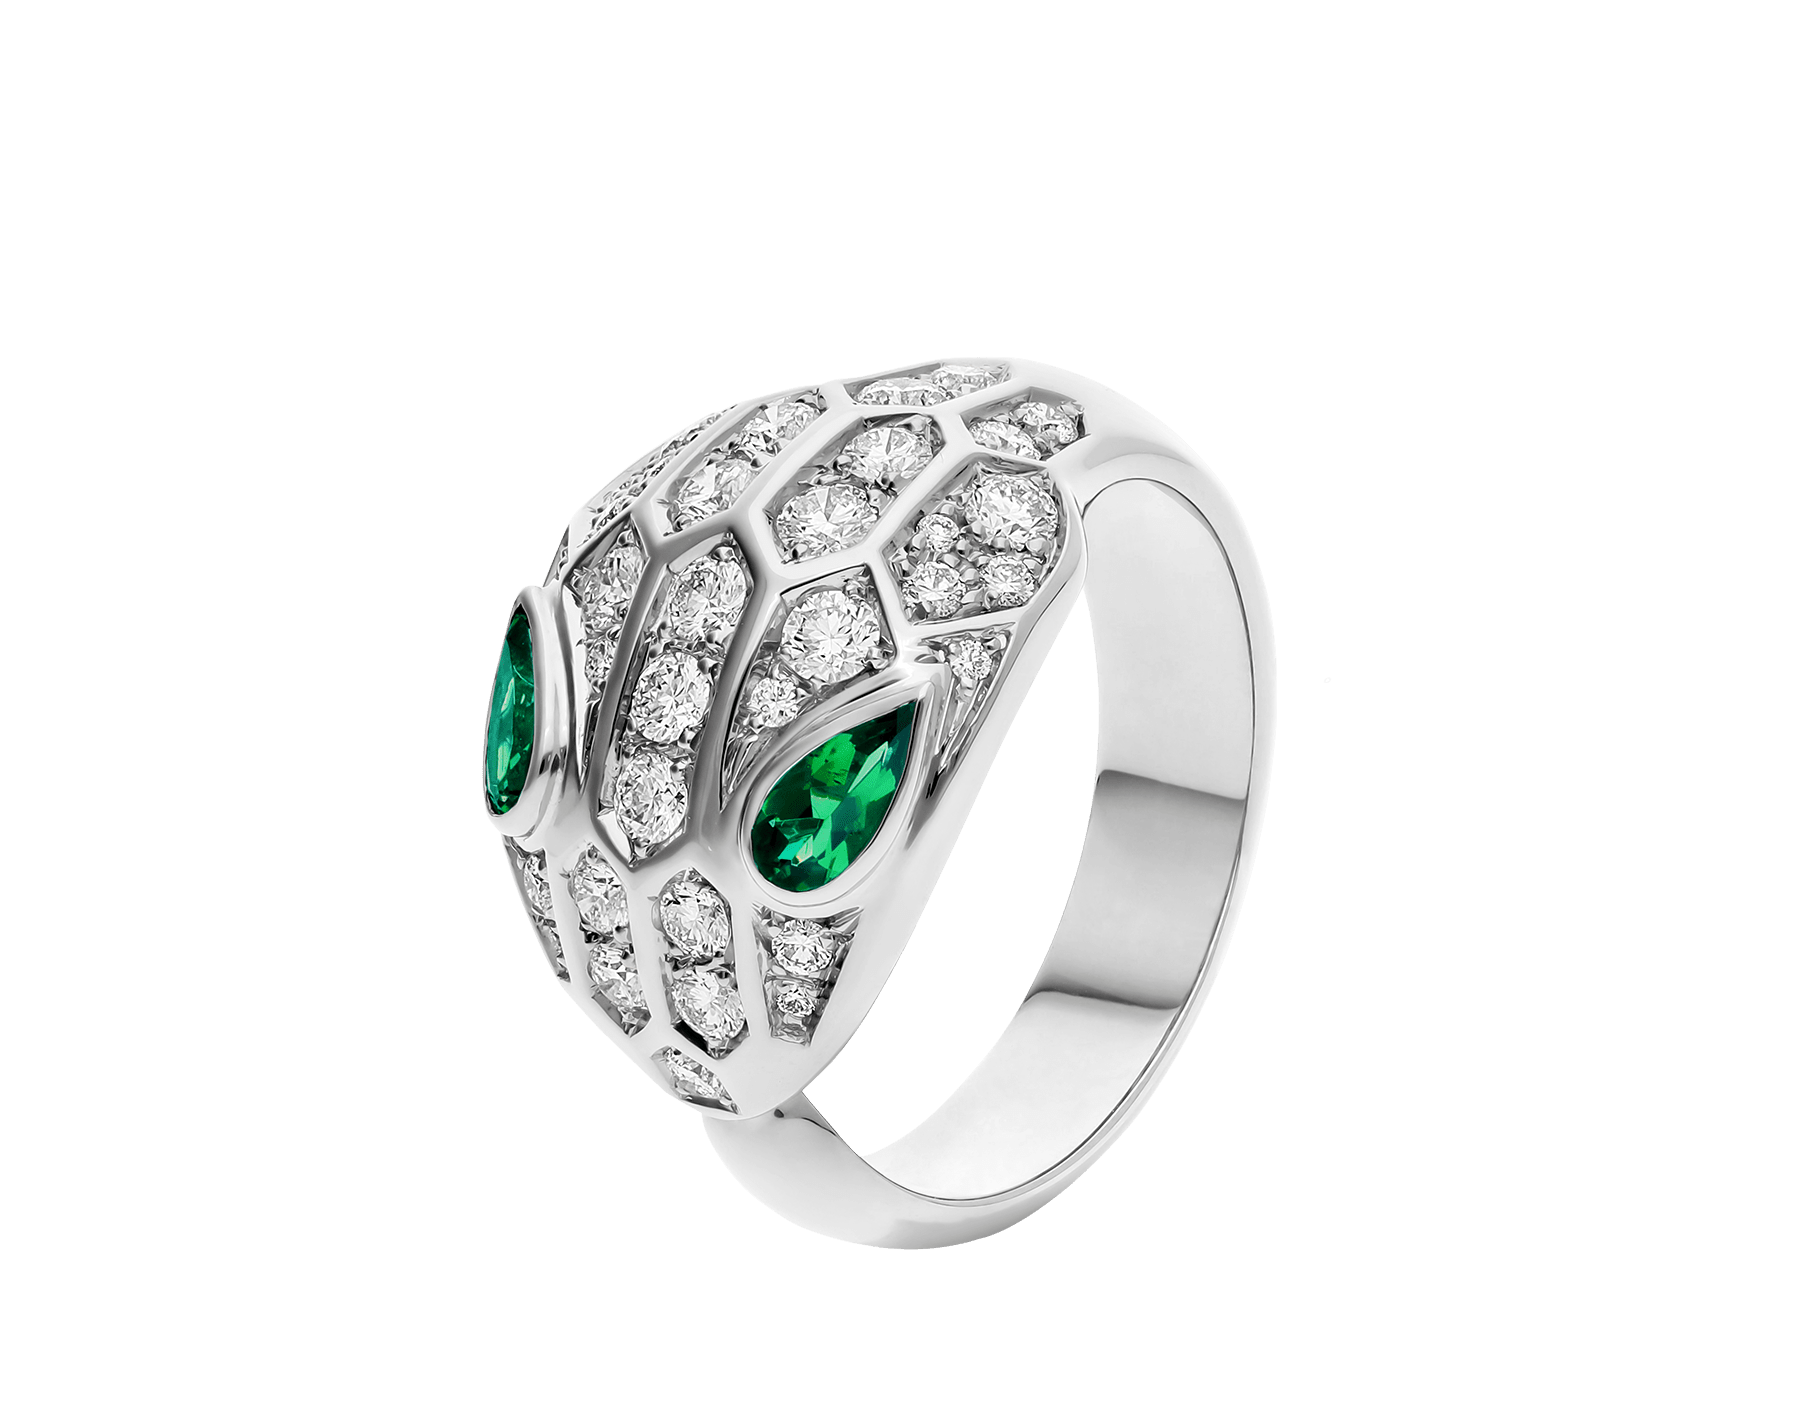 Serpenti ring in 18 kt white gold set with two emerald eyes (0.30 ct) and pavé diamonds (0.76 ct). AN858255 image 1